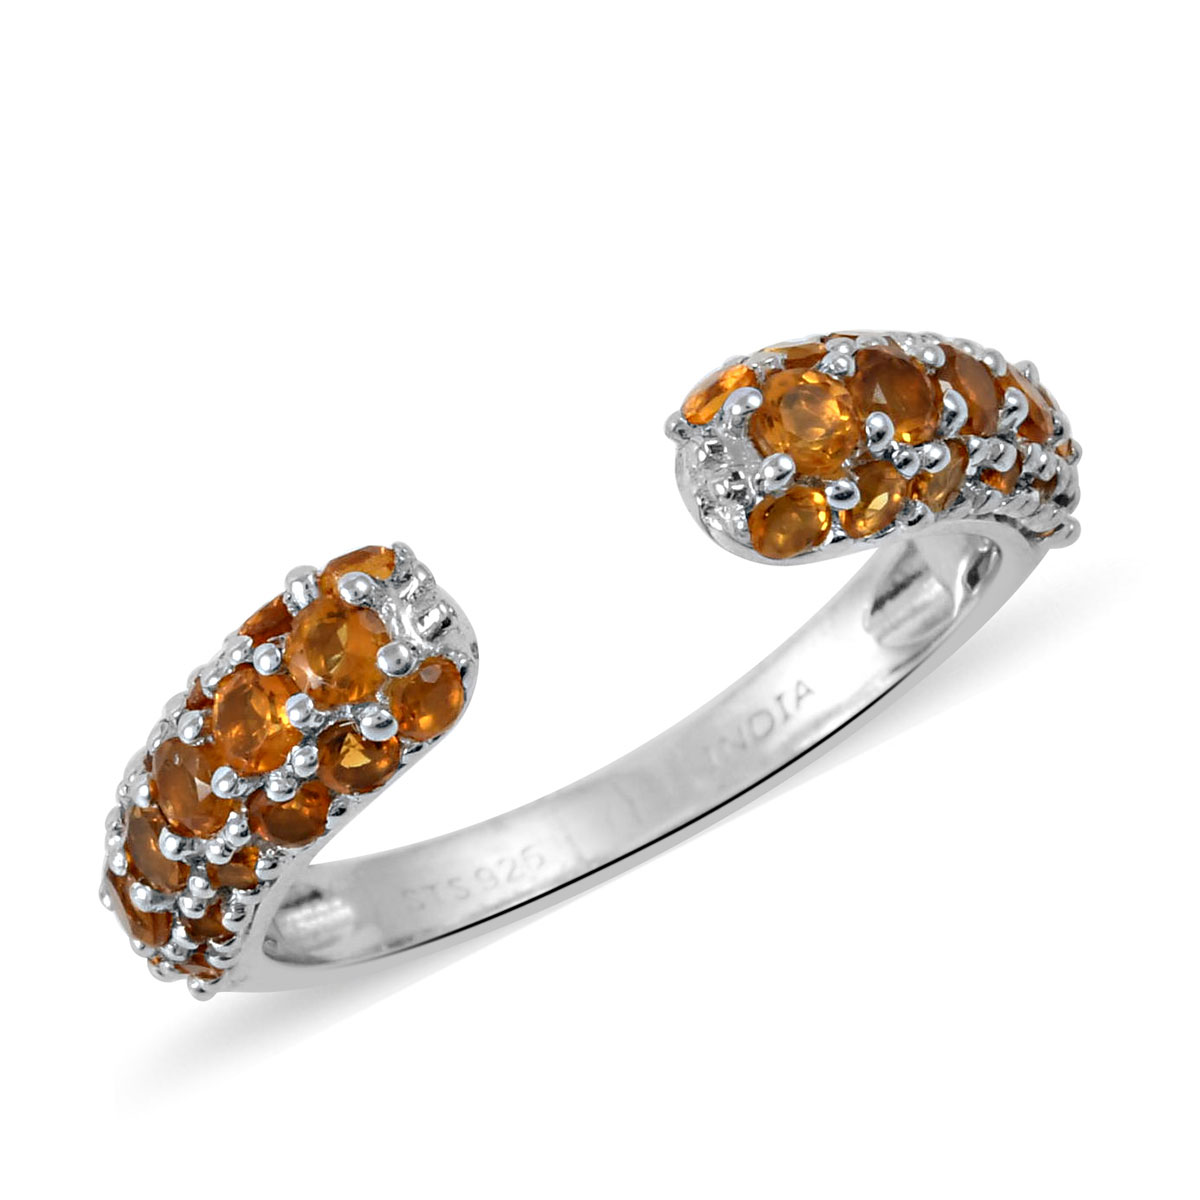 925 Sterling Silver Citrine Ring Size 7 Stud Solitaire Earrings Jewelry Gift Set